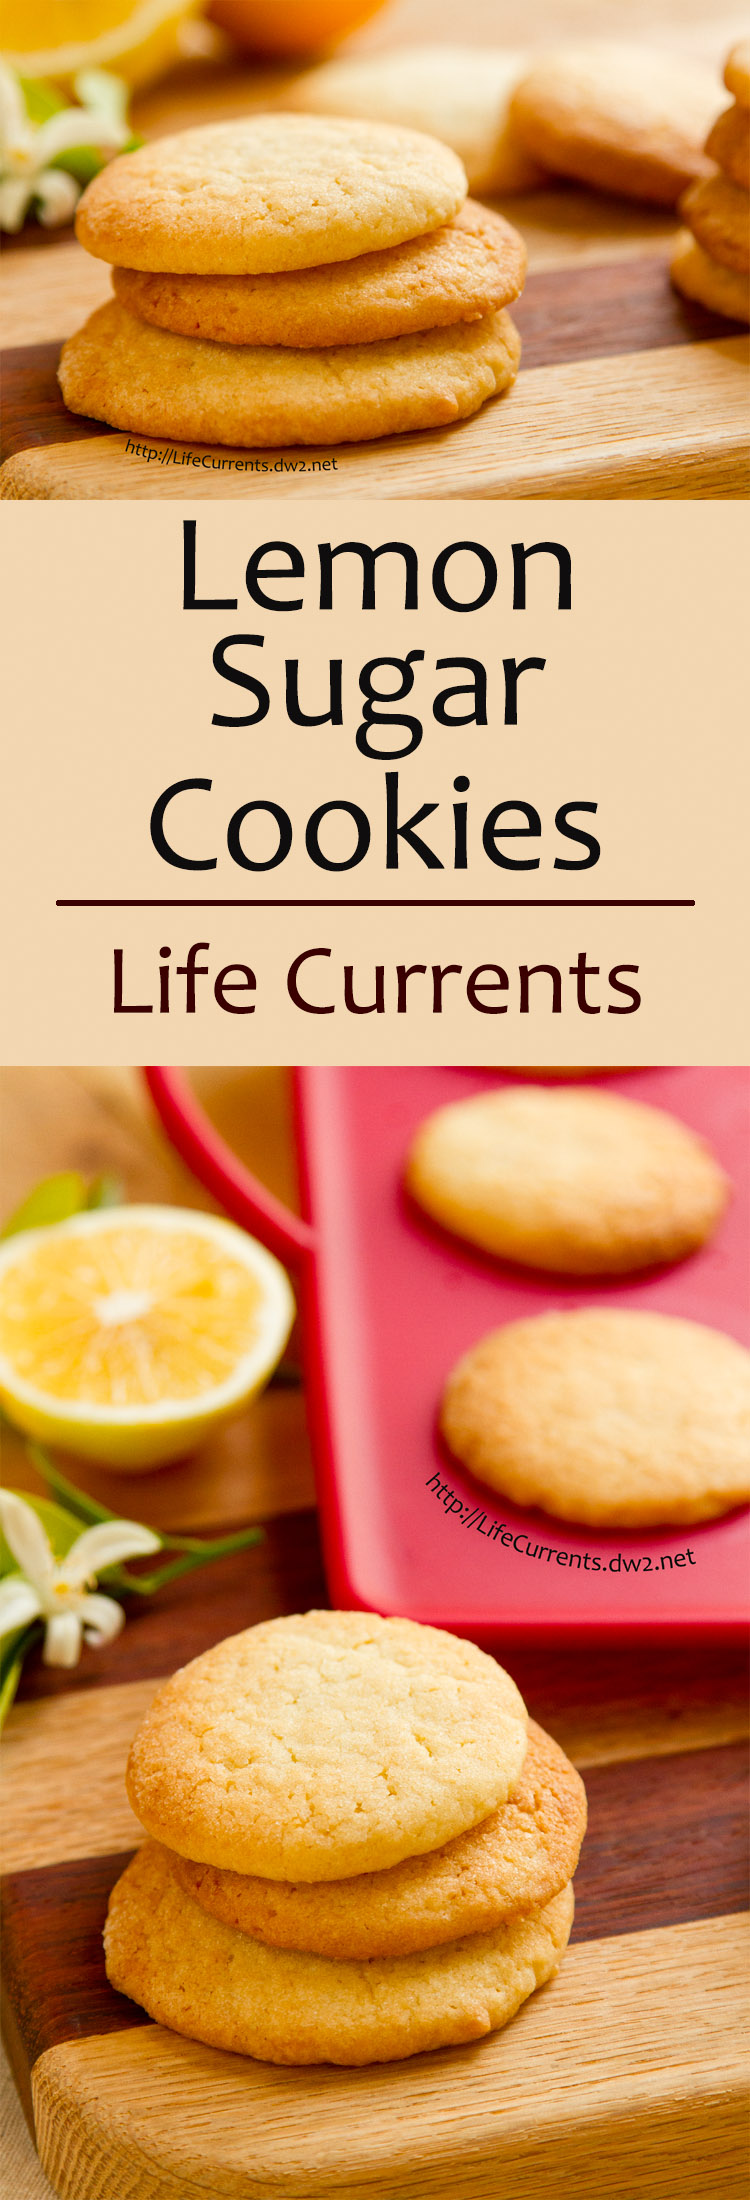 These light little Lemon Sugar Cookies are the perfect sweet treat; they're so easy to eat and everyone loves them! by Life Currents